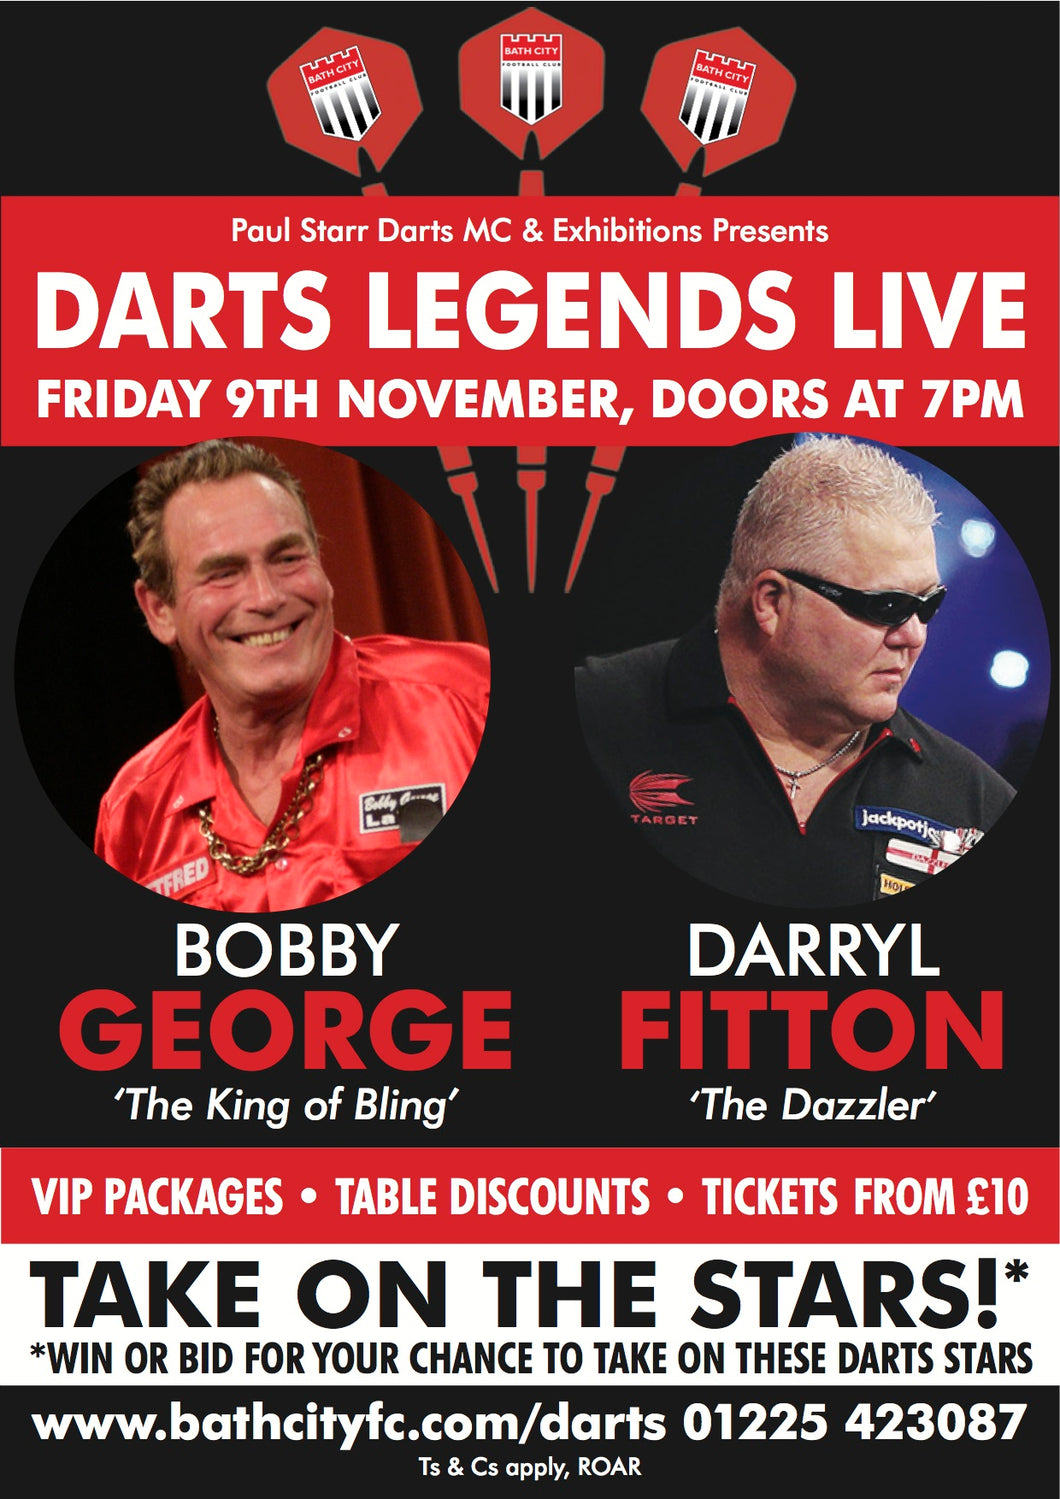 Darts Legends Live at Bath City - Friday 9th November 2018 ONLINE SALES NOW CLOSED - TICKETS AVAILABLE ON THE DOOR